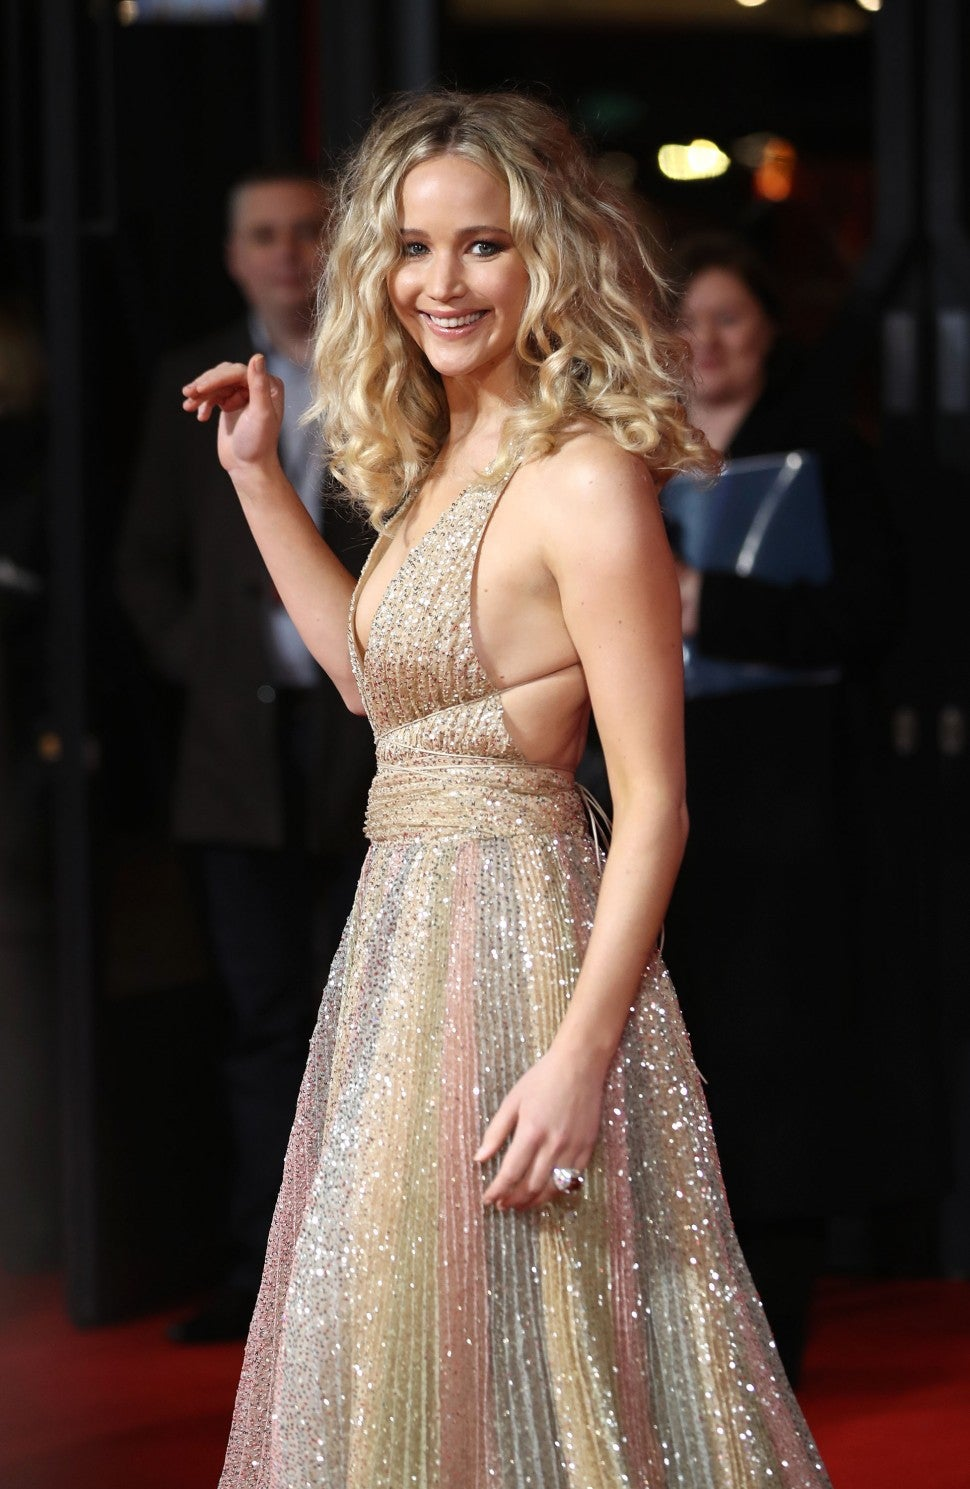 Jennifer Lawrence Stuns in Glittering Gown at Red Sparrow